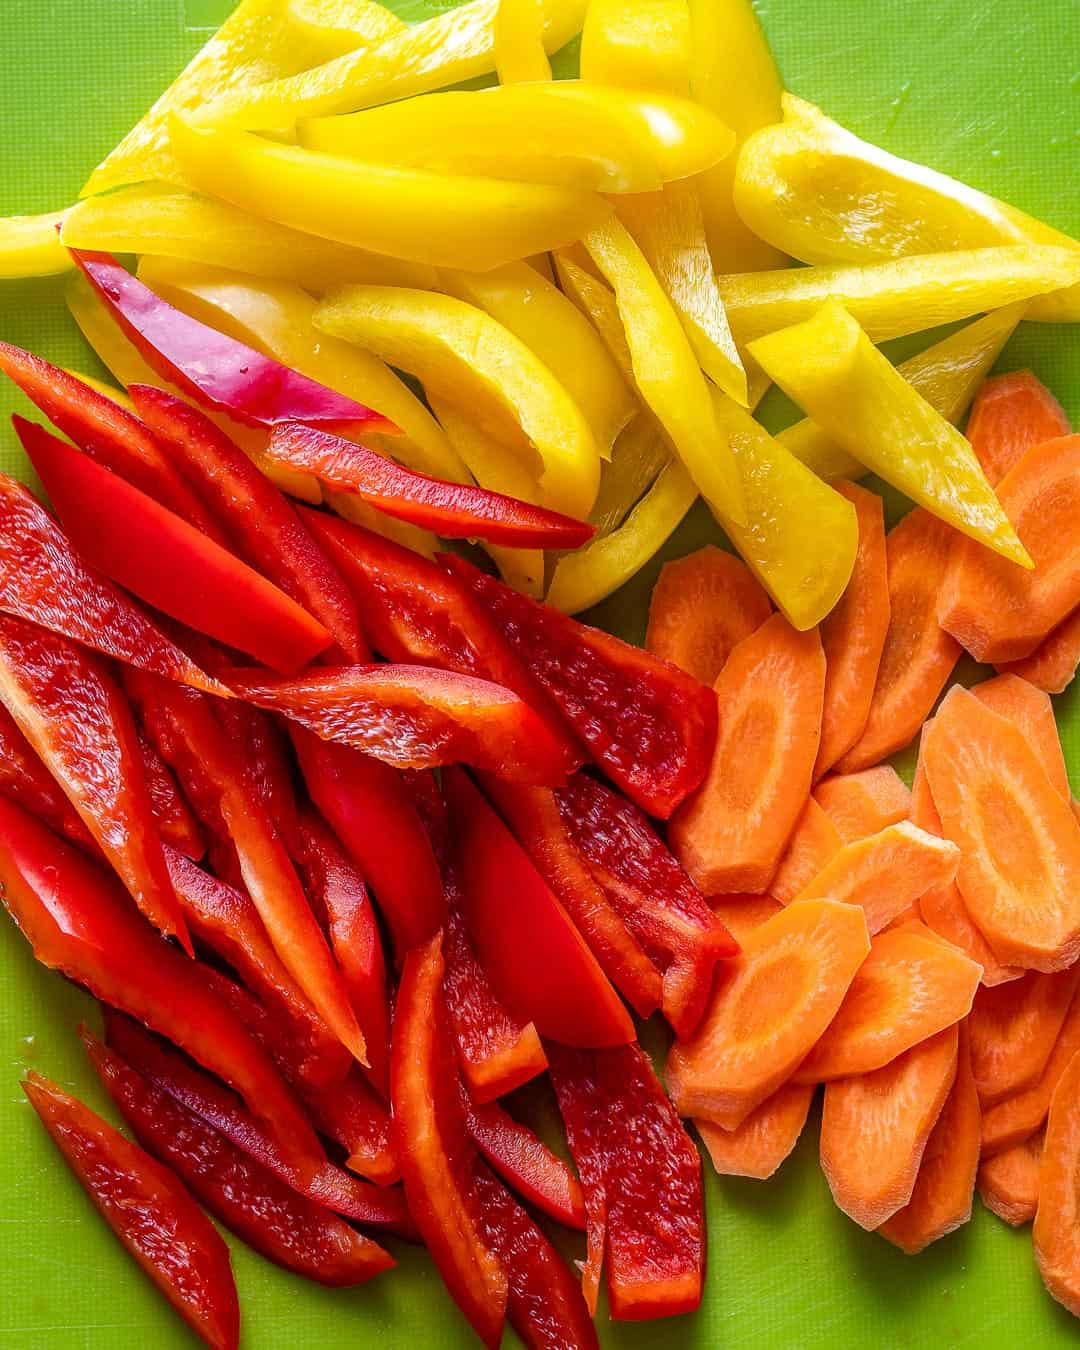 Bell peppers and carrots sliced for stir fry.